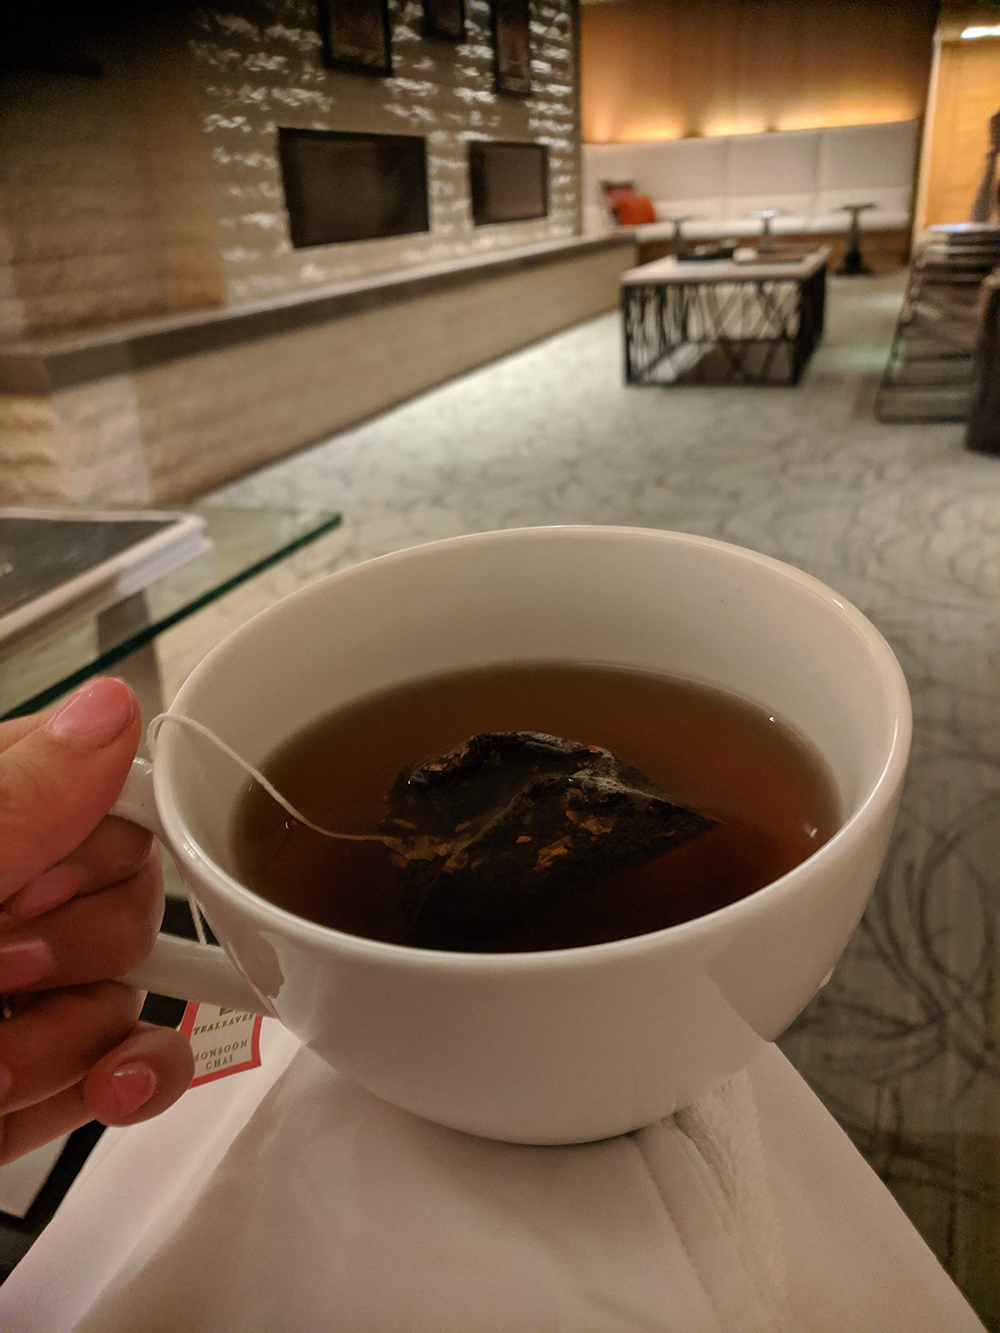 Sipping tea before my spa treatment.